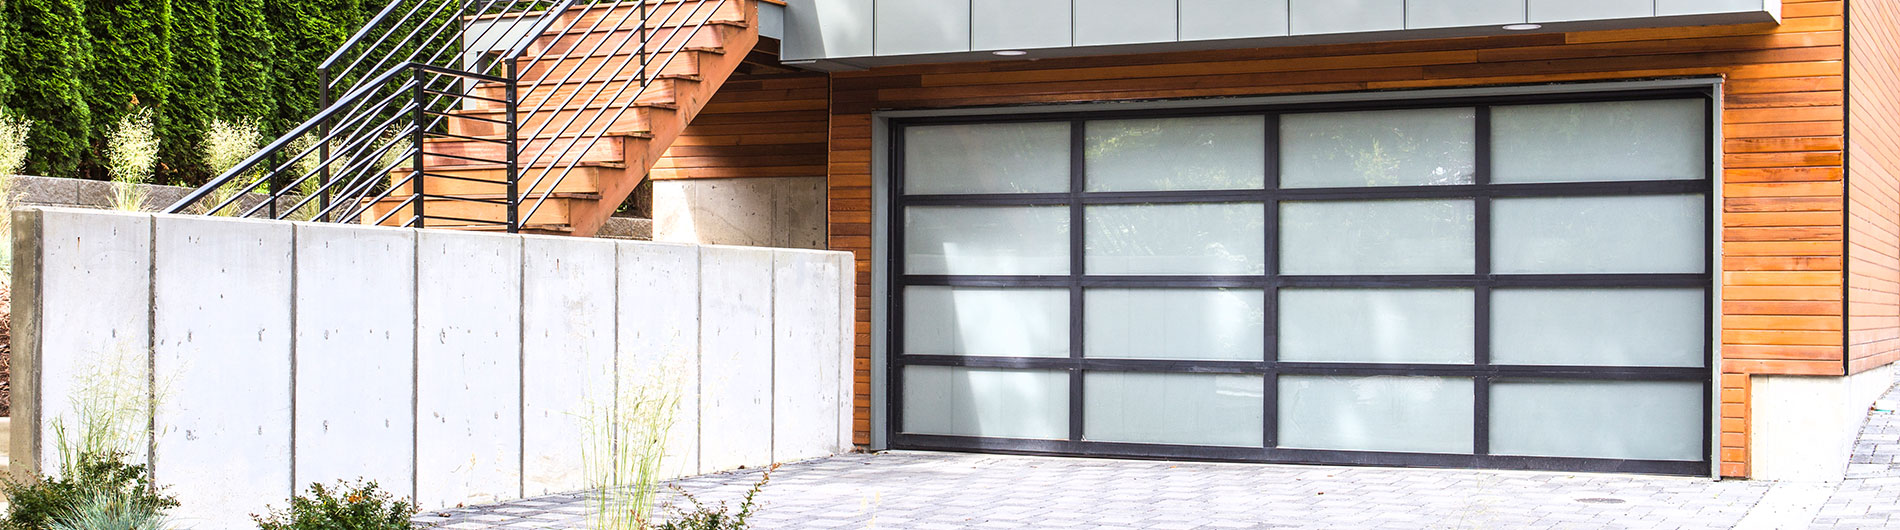 8800-Aluminum-Garage-Door-Black-White-Laminated.jpg